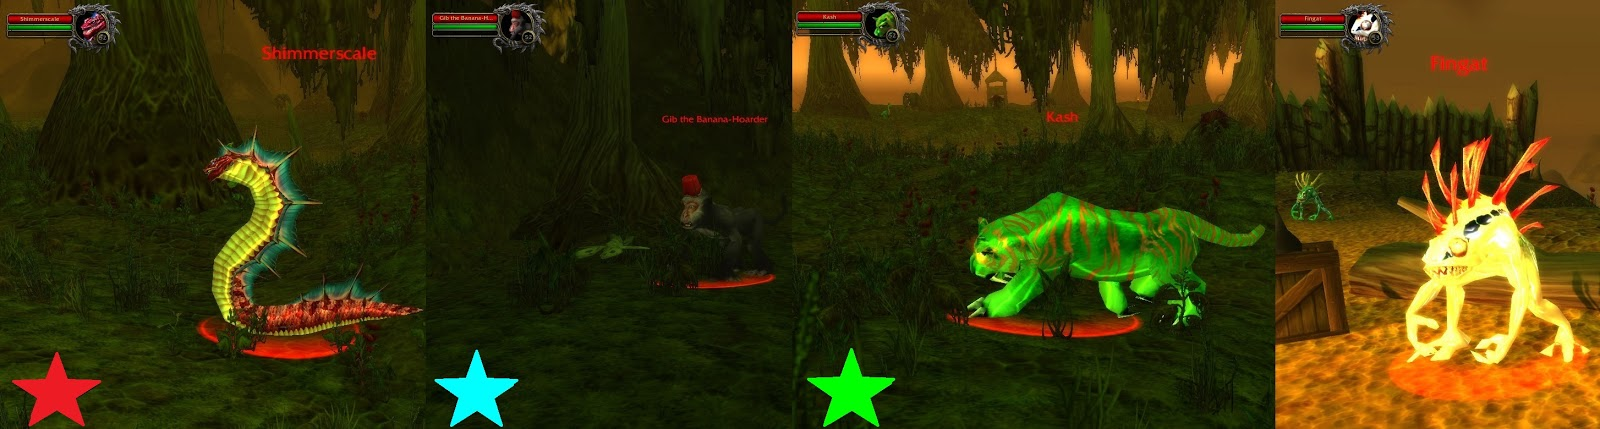 WoW Rare Spawns: Swamp of Sorrows Rare Spawns - Including